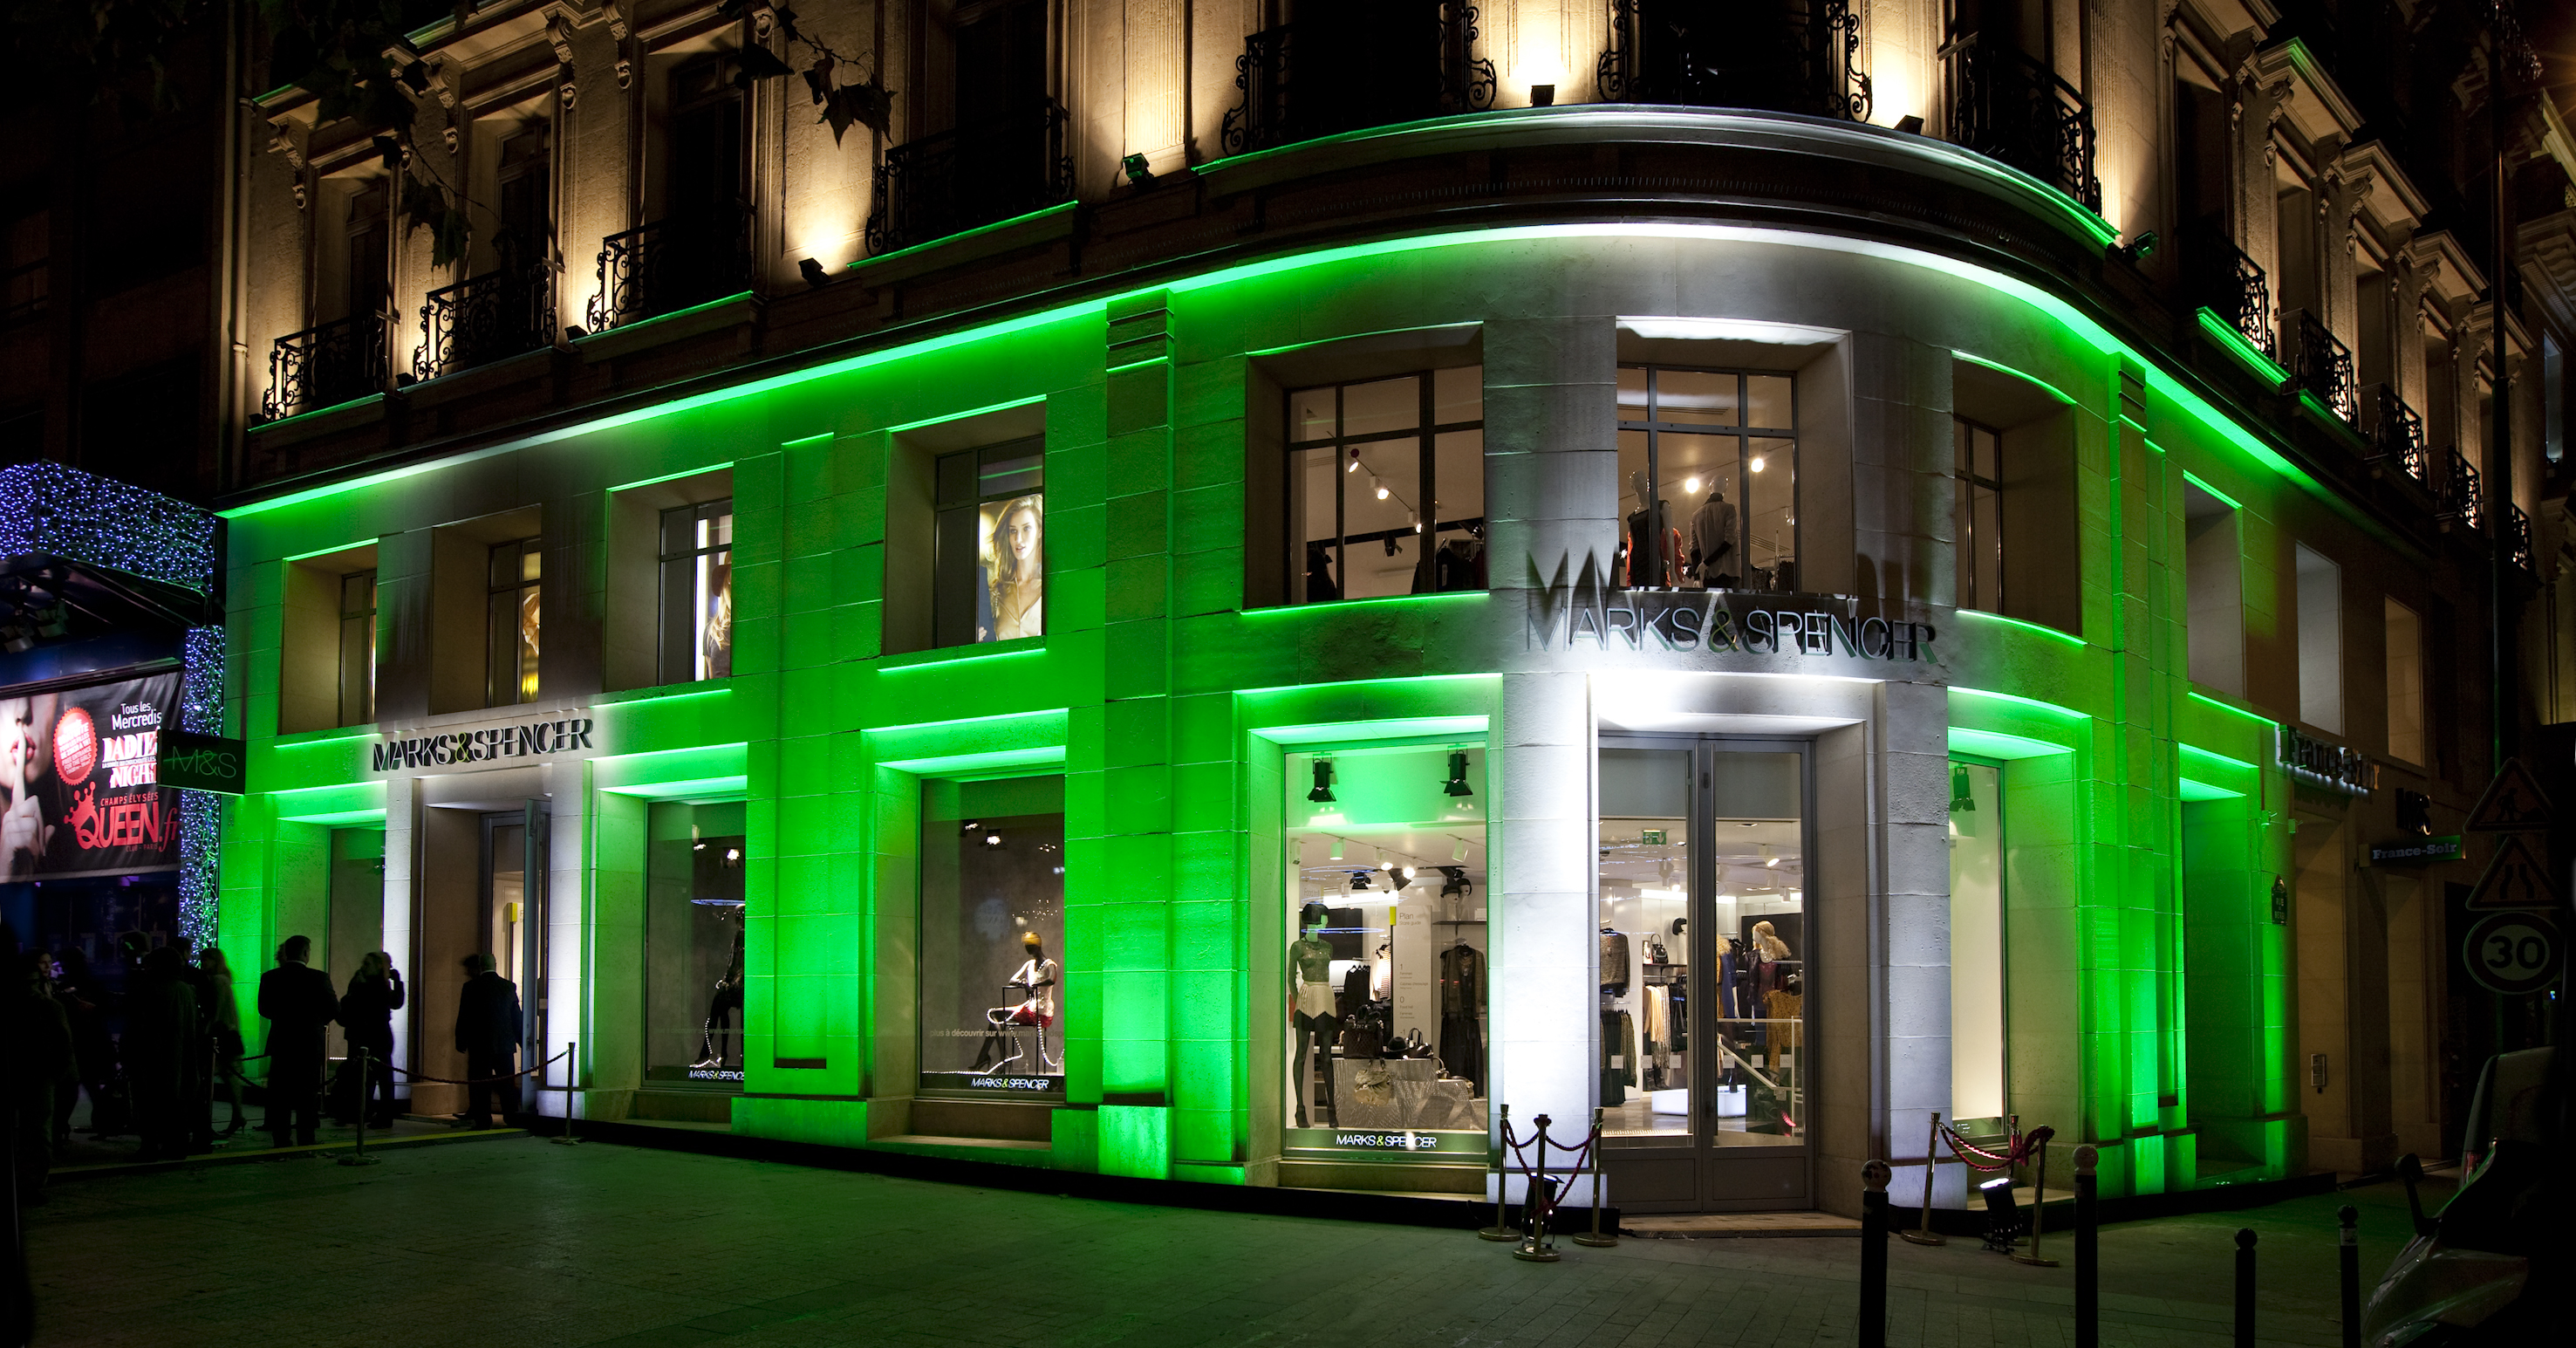 Grand magasin the retail news for Adresse mark and spencer paris